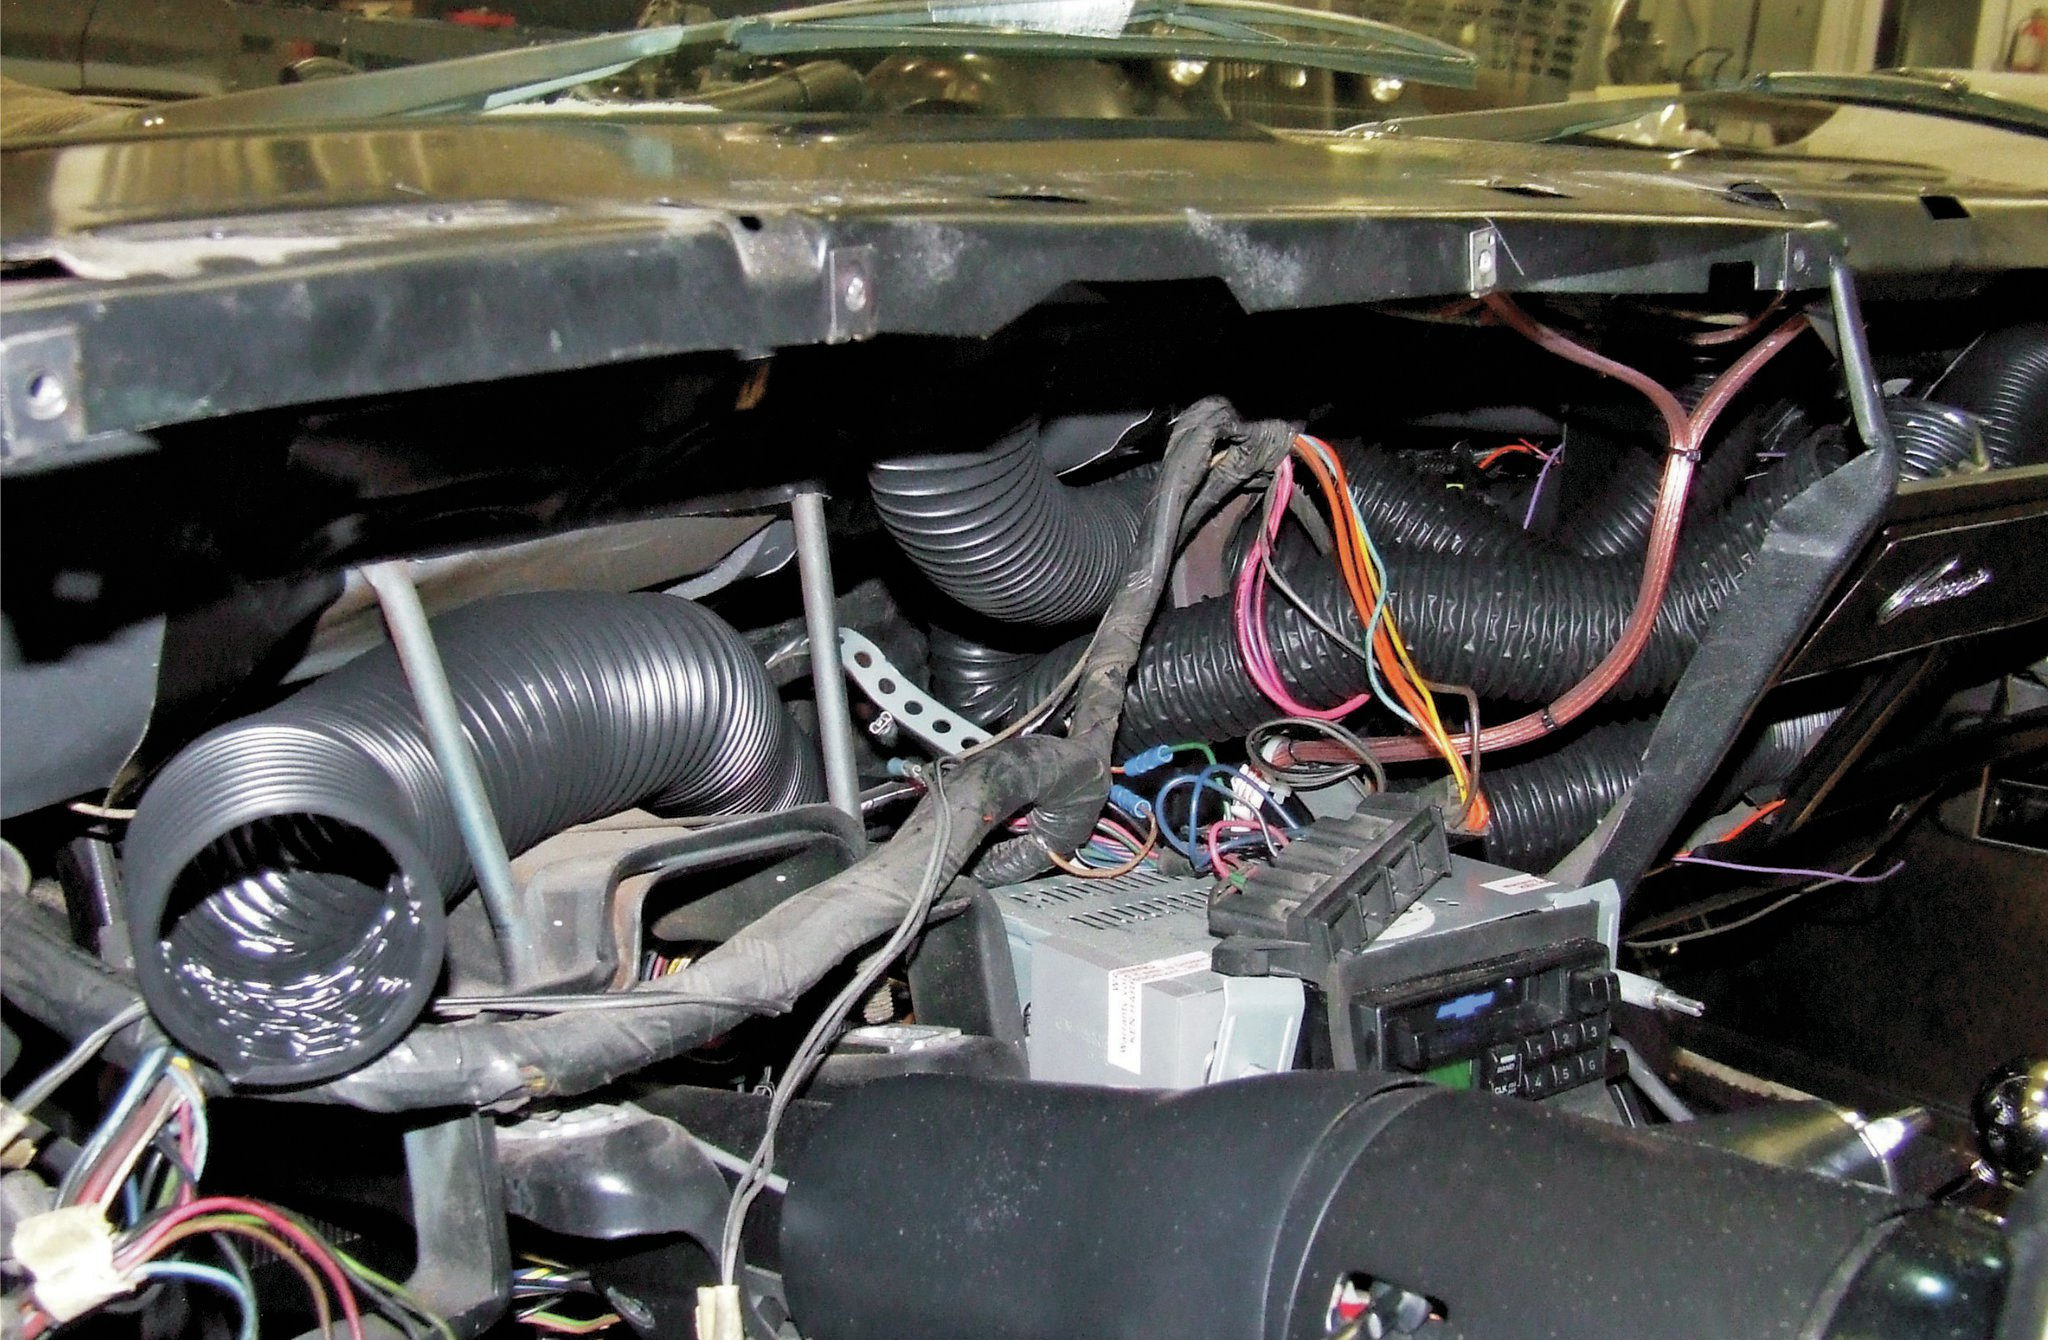 American Wiring Diagram 1972 Chevelle Installing Air Conditioning In Your Muscle Car Hot Rod